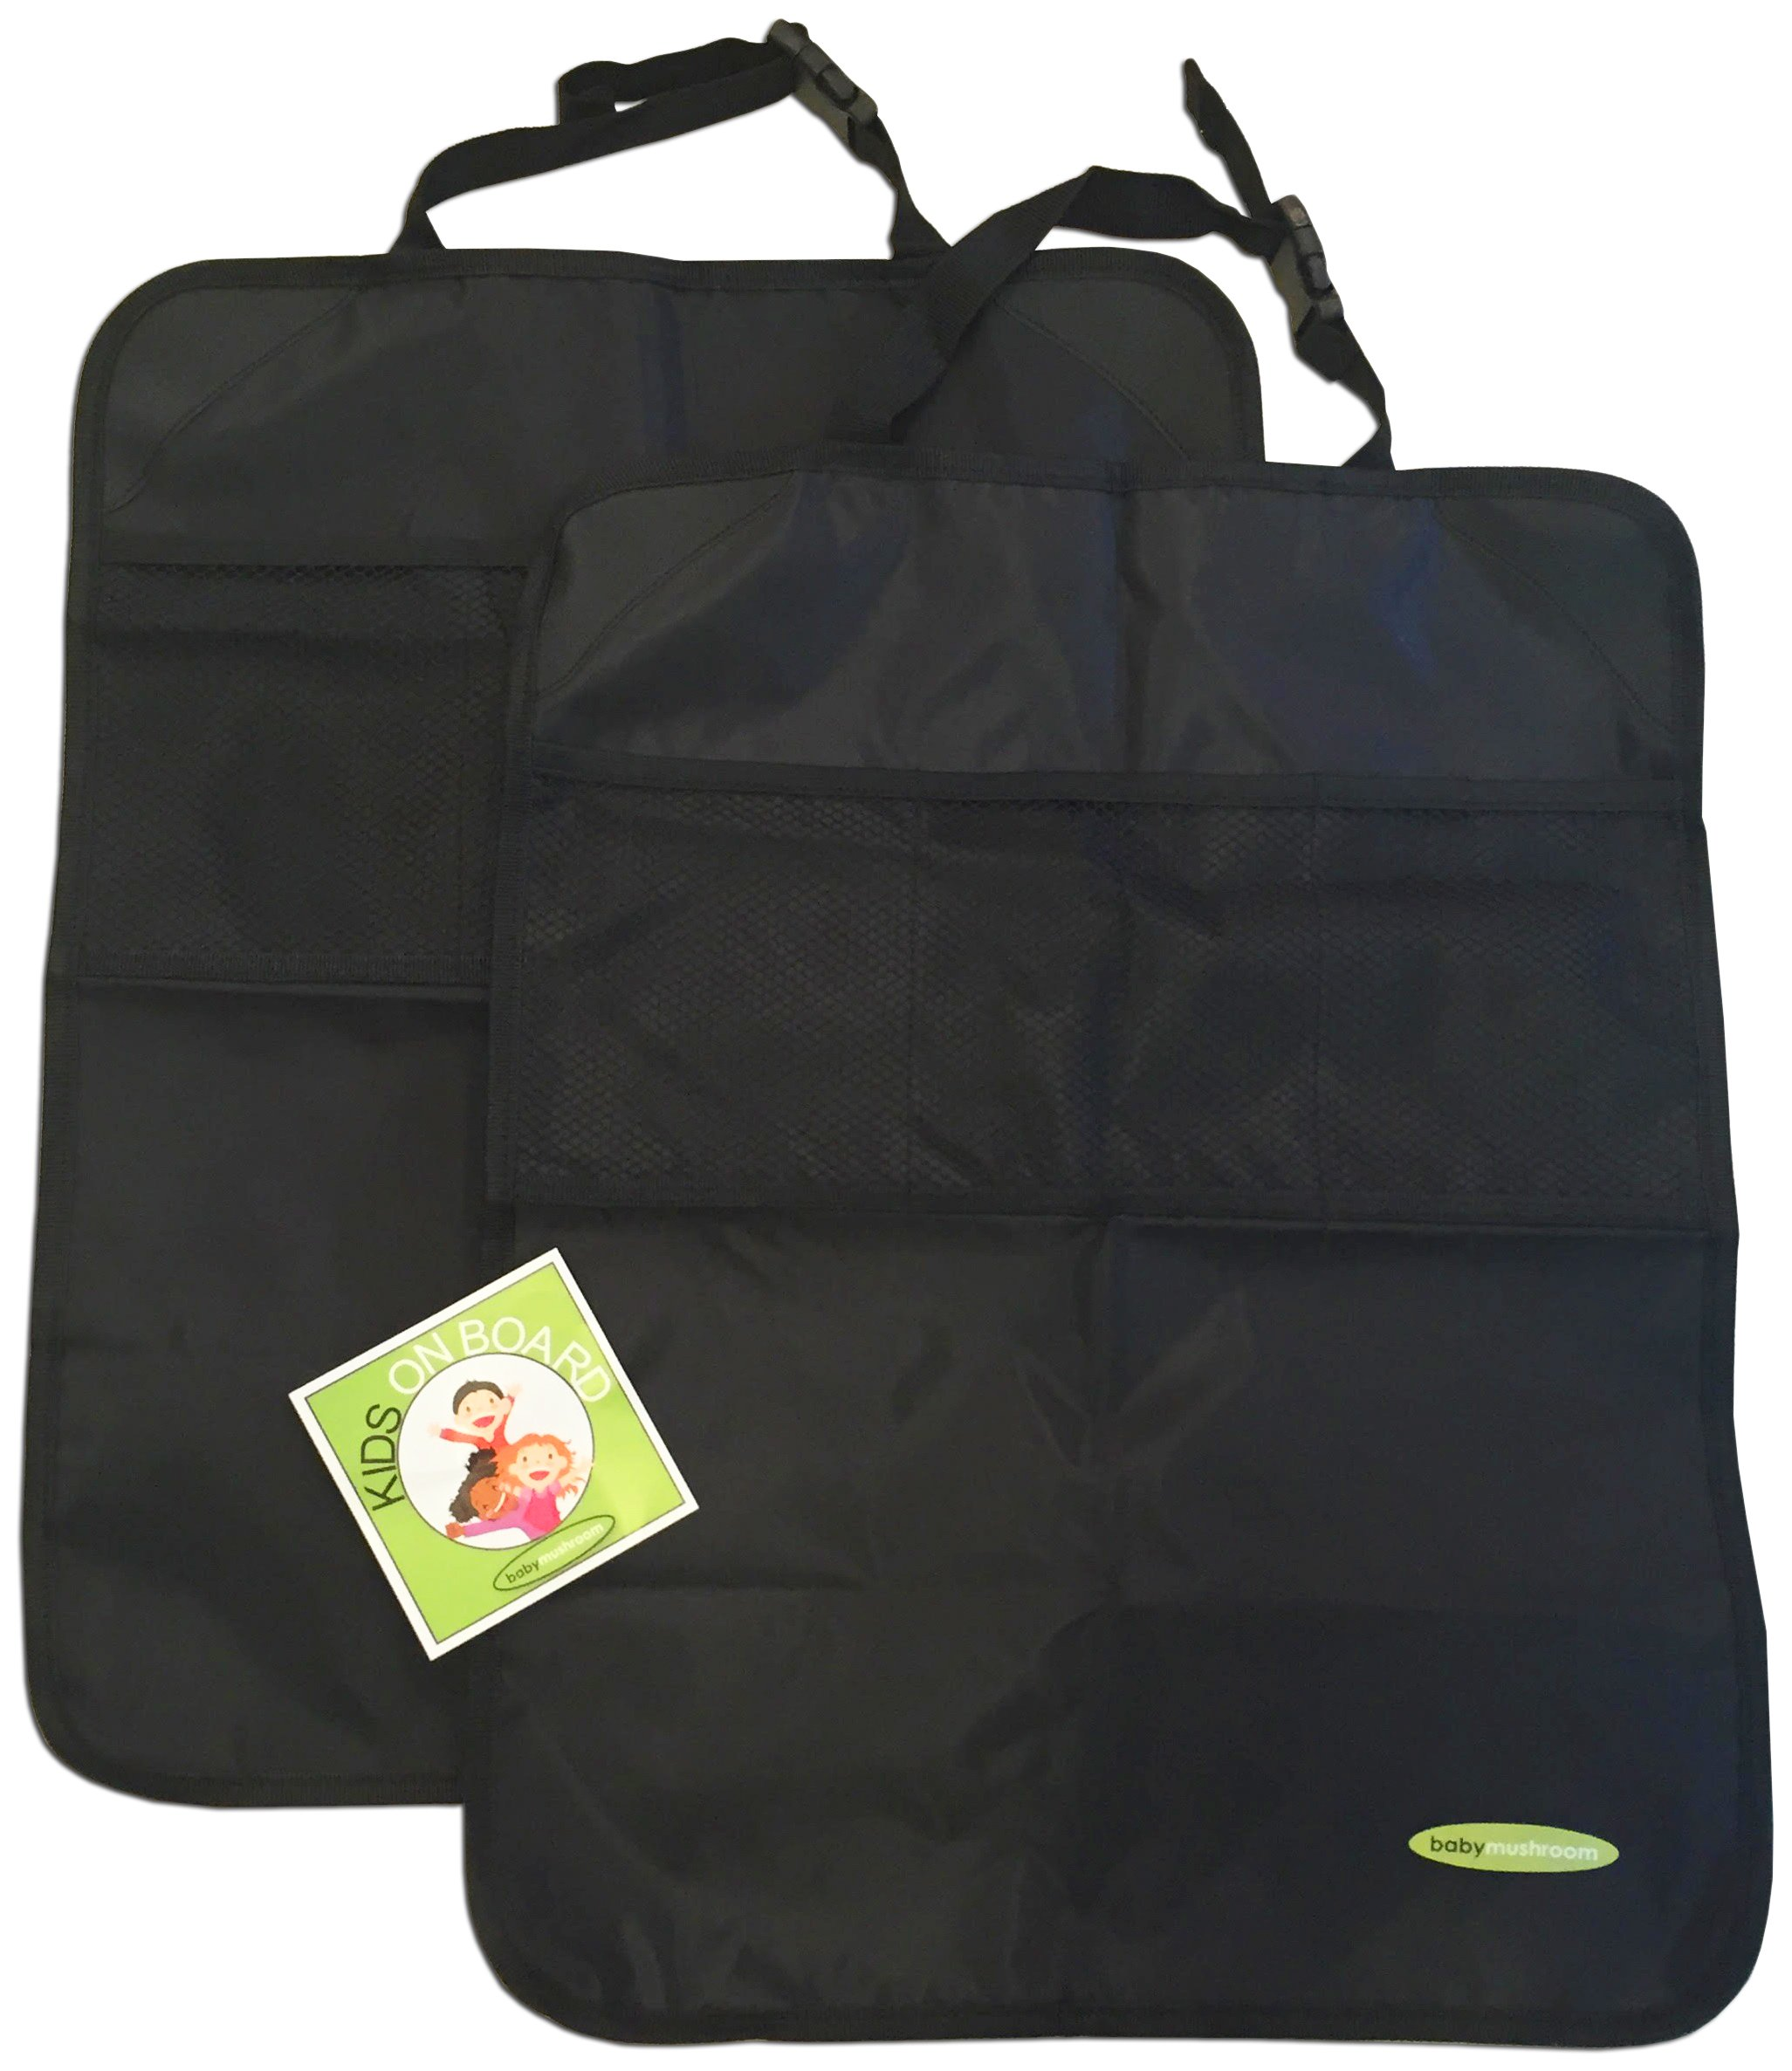 Premium Kick Mats by Baby Mushroom (2 Pack) - Superior Quality Waterproof Car Seat Back Protectors w/Storage and Reinforced Corners. Bonus Kids on Board Decal! Protects Upholstery, Fabric & Leather. by Baby Mushroom